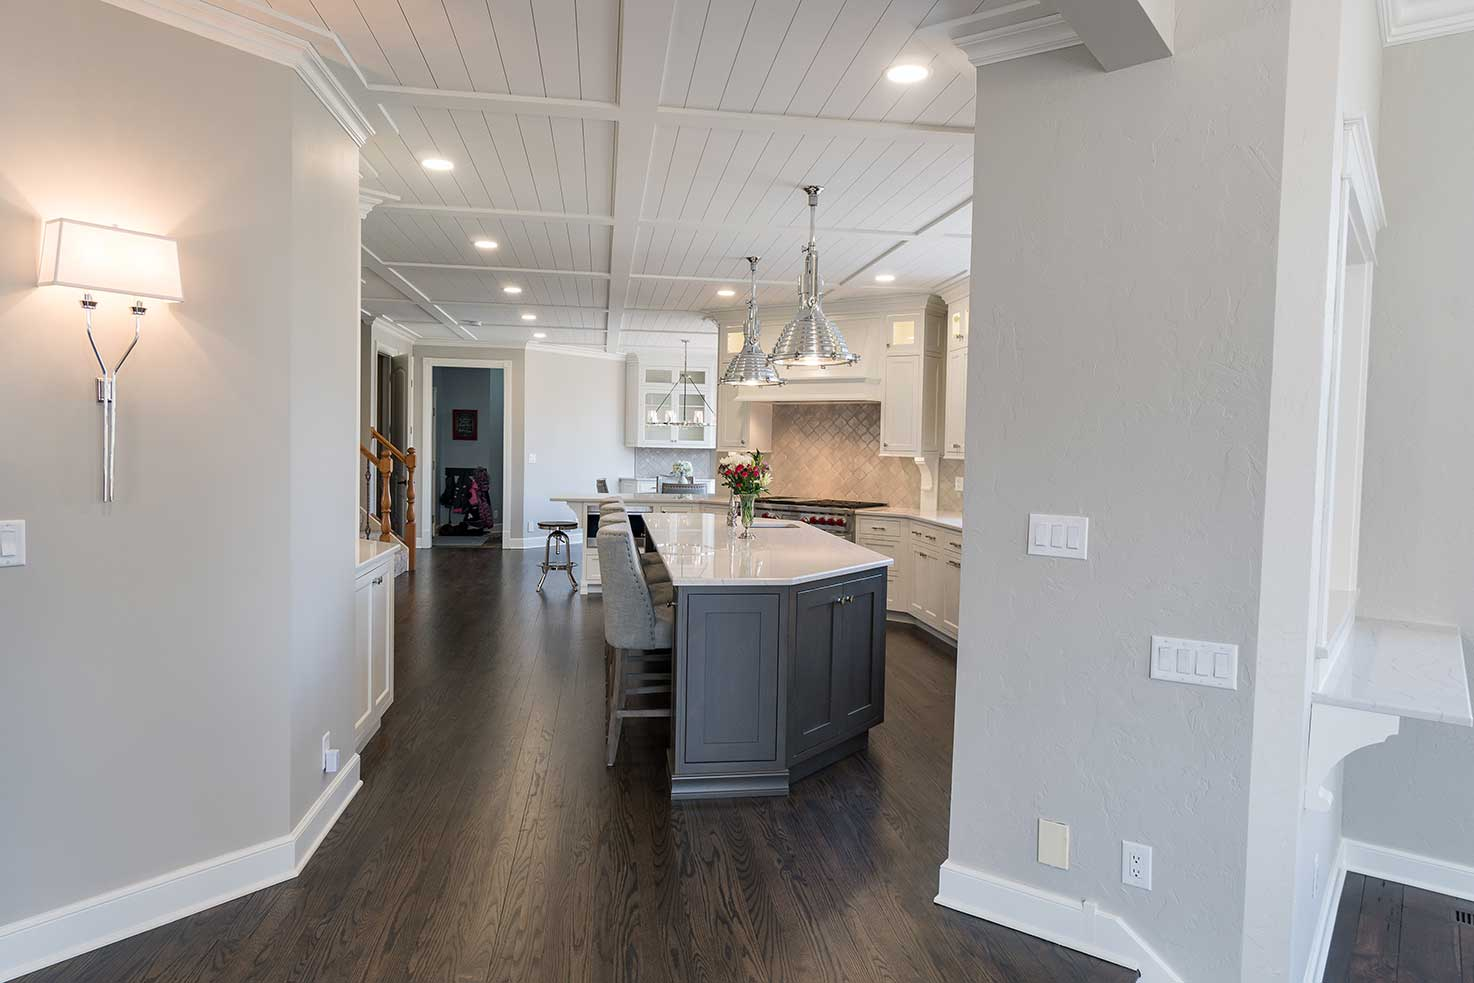 Full hallway view with marble counter and hanging lights